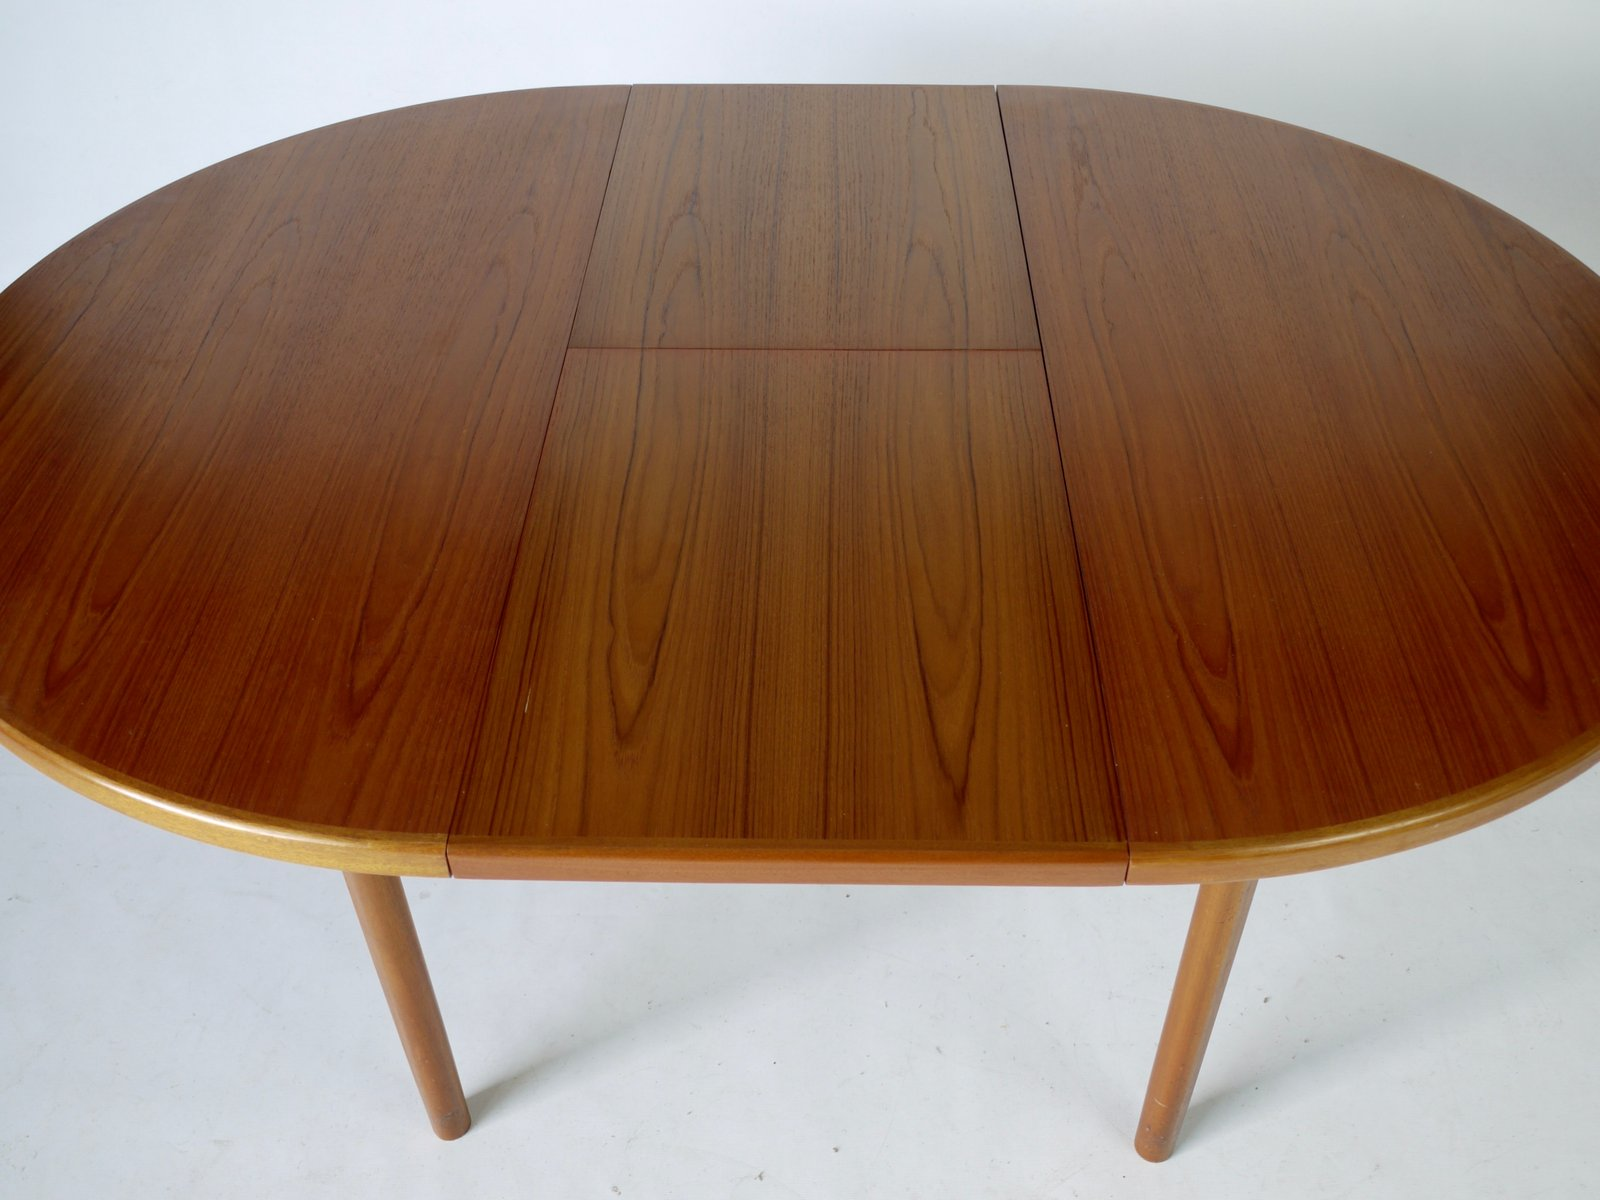 Teak Extendable Circular Dining Table from McIntosh 1970s  : teak extendable circular dining table from mcintosh 1970s 3 from www.pamono.com.au size 1601 x 1200 jpeg 106kB